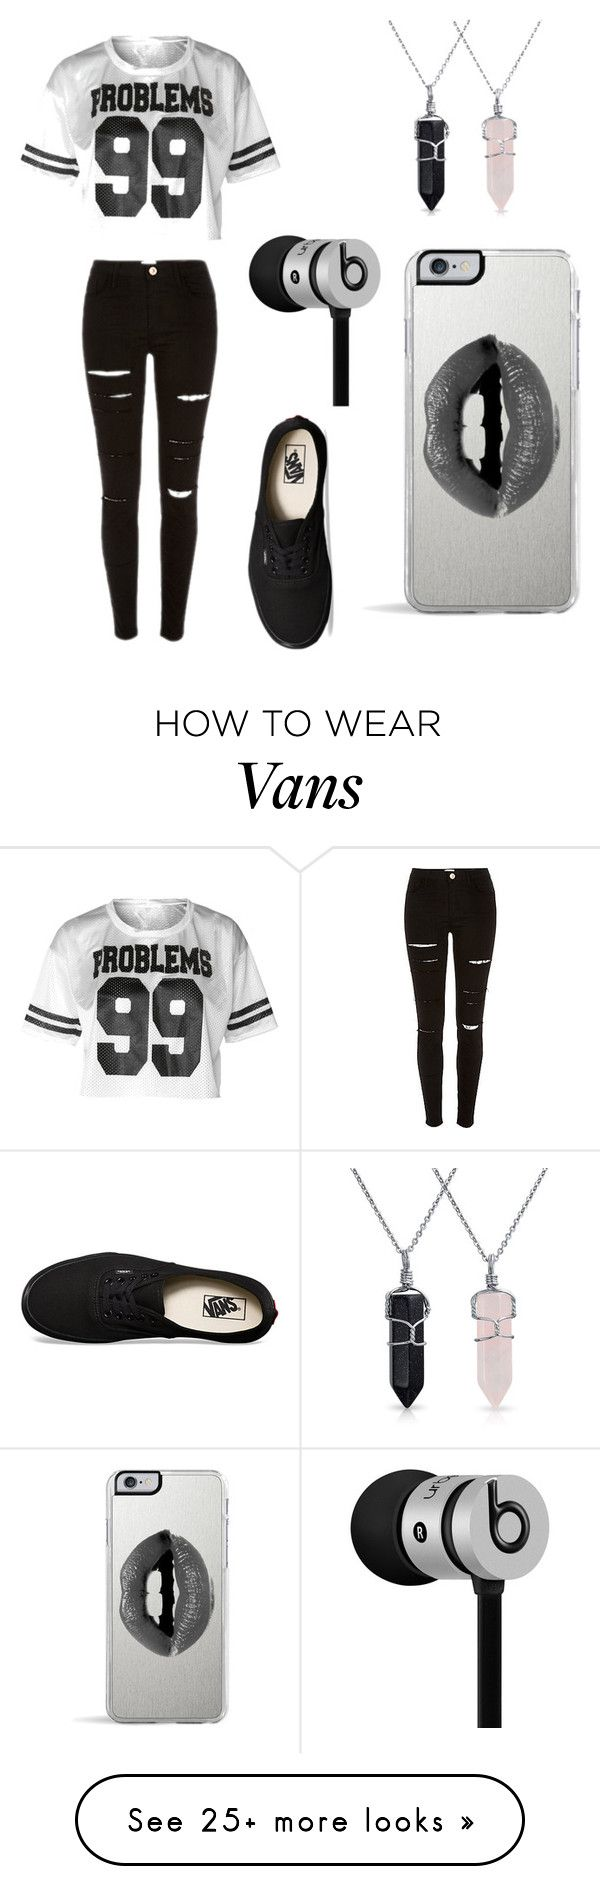 """Untitled #1"" by destinyilla on Polyvore featuring Vans, Bling Jewelry, Lipsy and Beats by Dr. Dre"